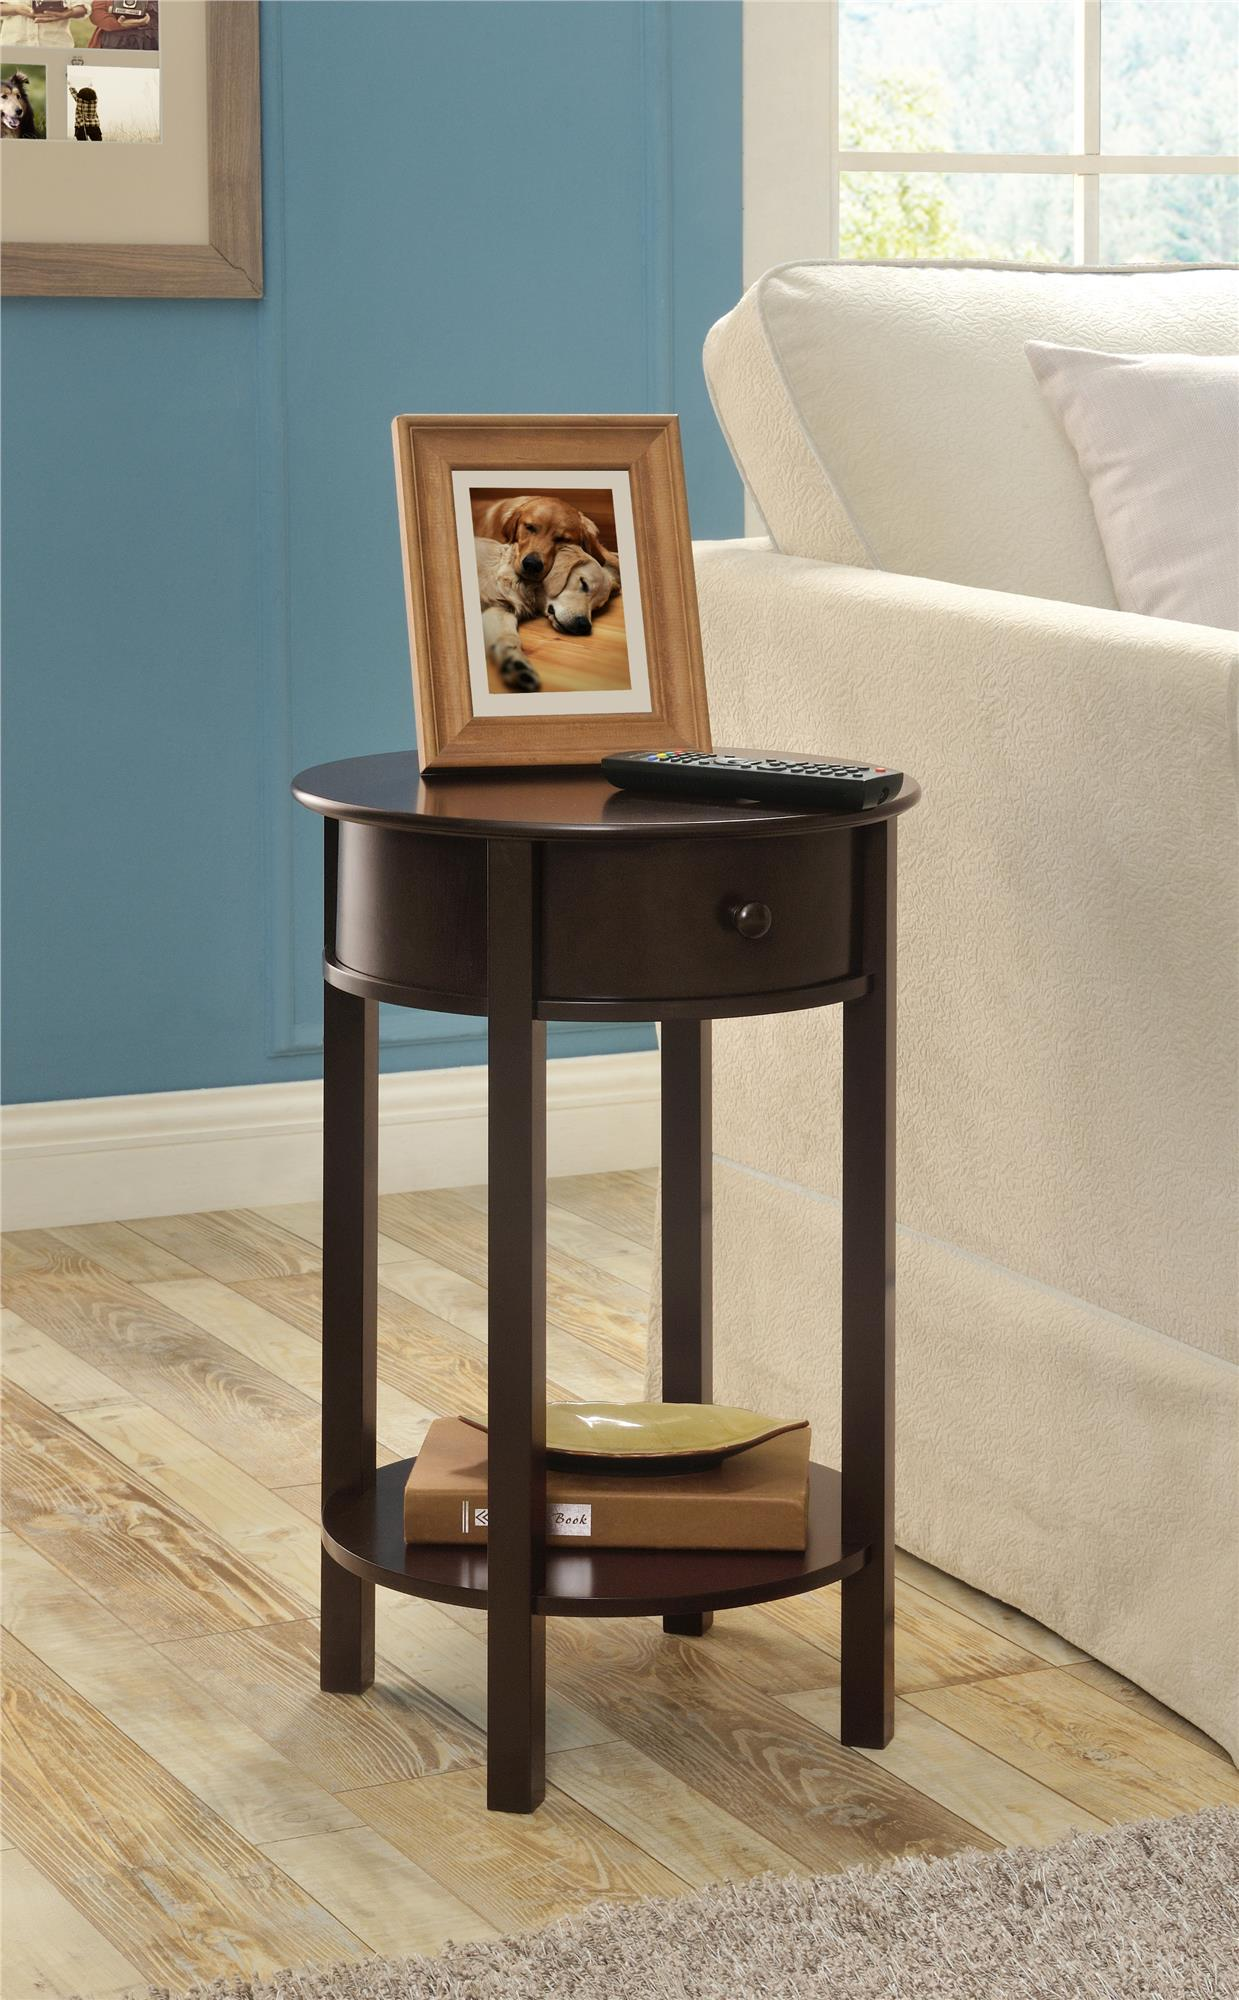 ameriwood home tipton round accent table espresso small tables for bedroom solid pine furniture large umbrella stand dark brown nightstand modern dining room unique pieces keter